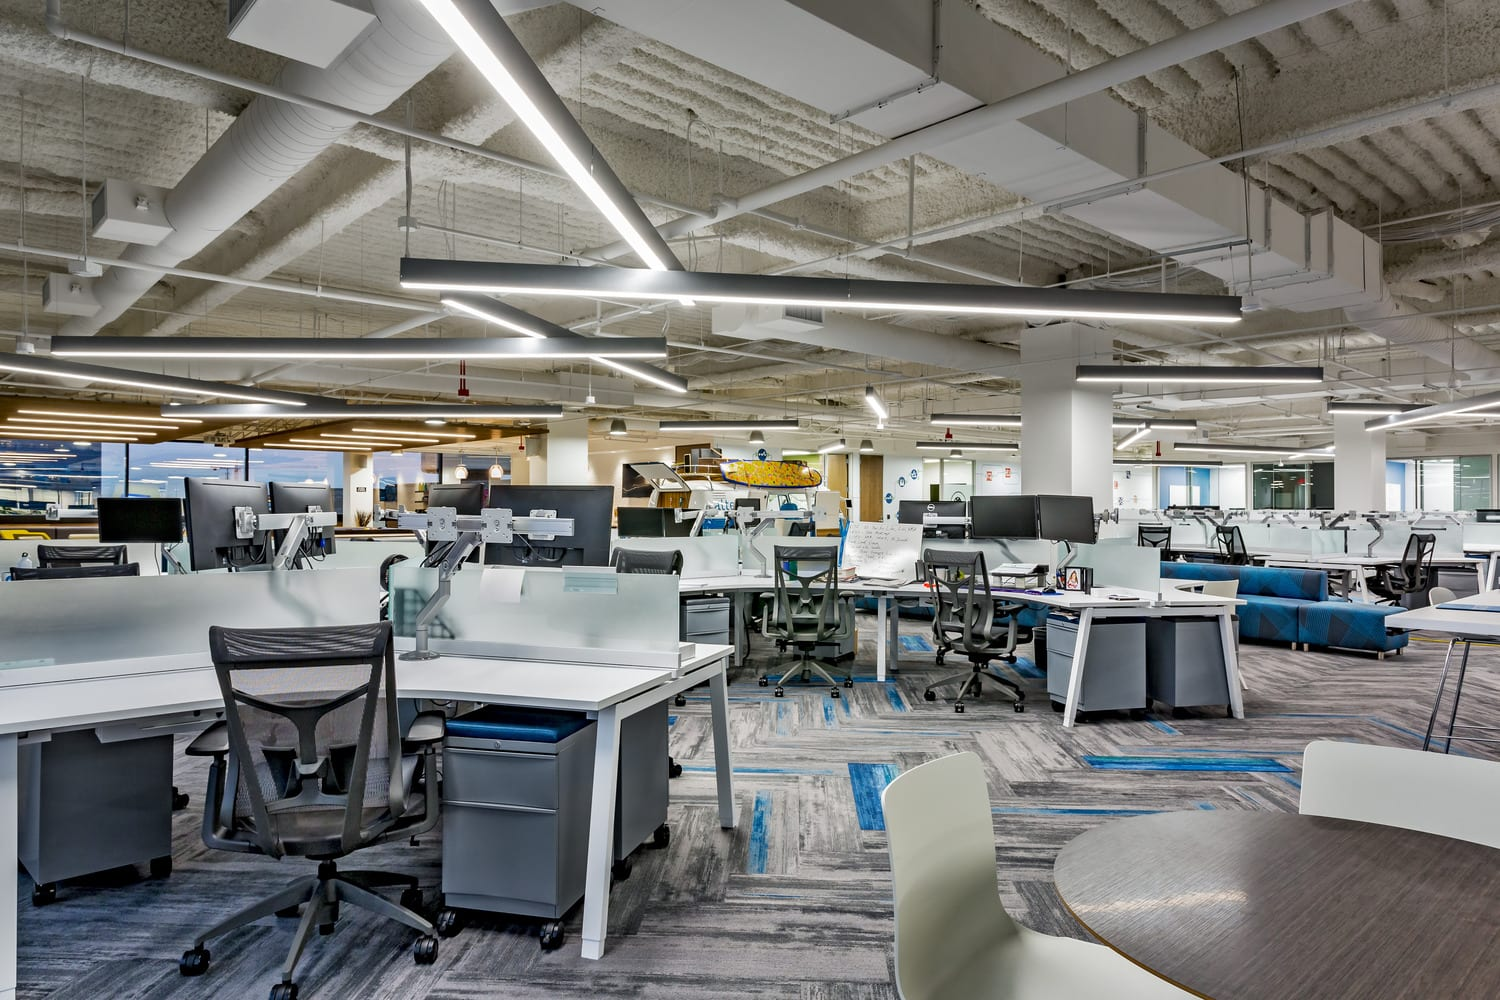 The Open Environment at the Alteryx Headquarters